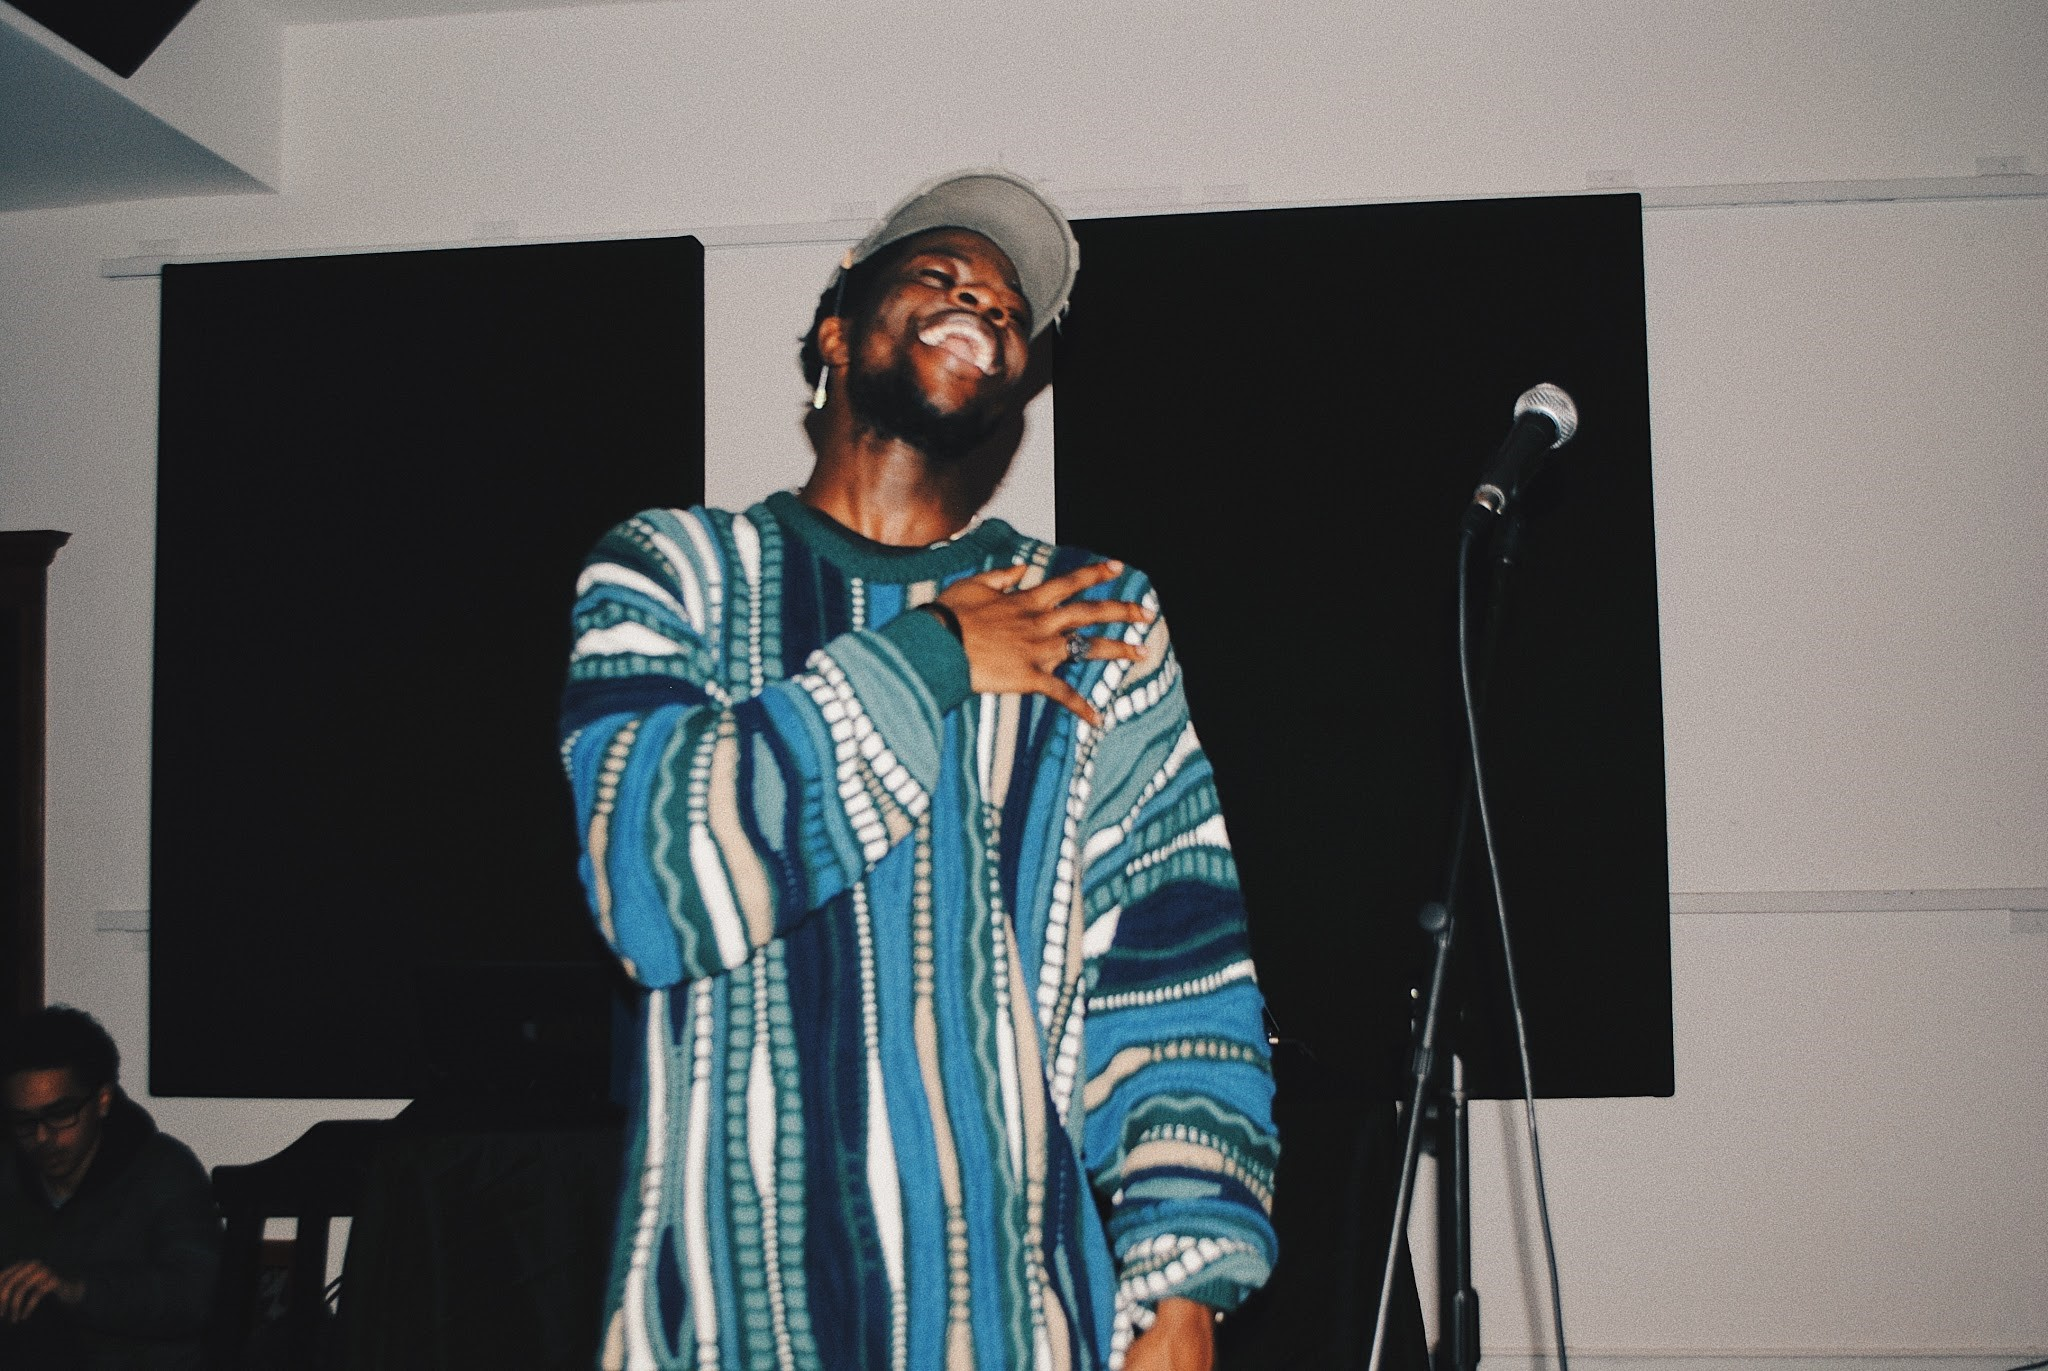 Femdot laughing on stage after his set. (Alexandra Amendola, 14 East Magazine)